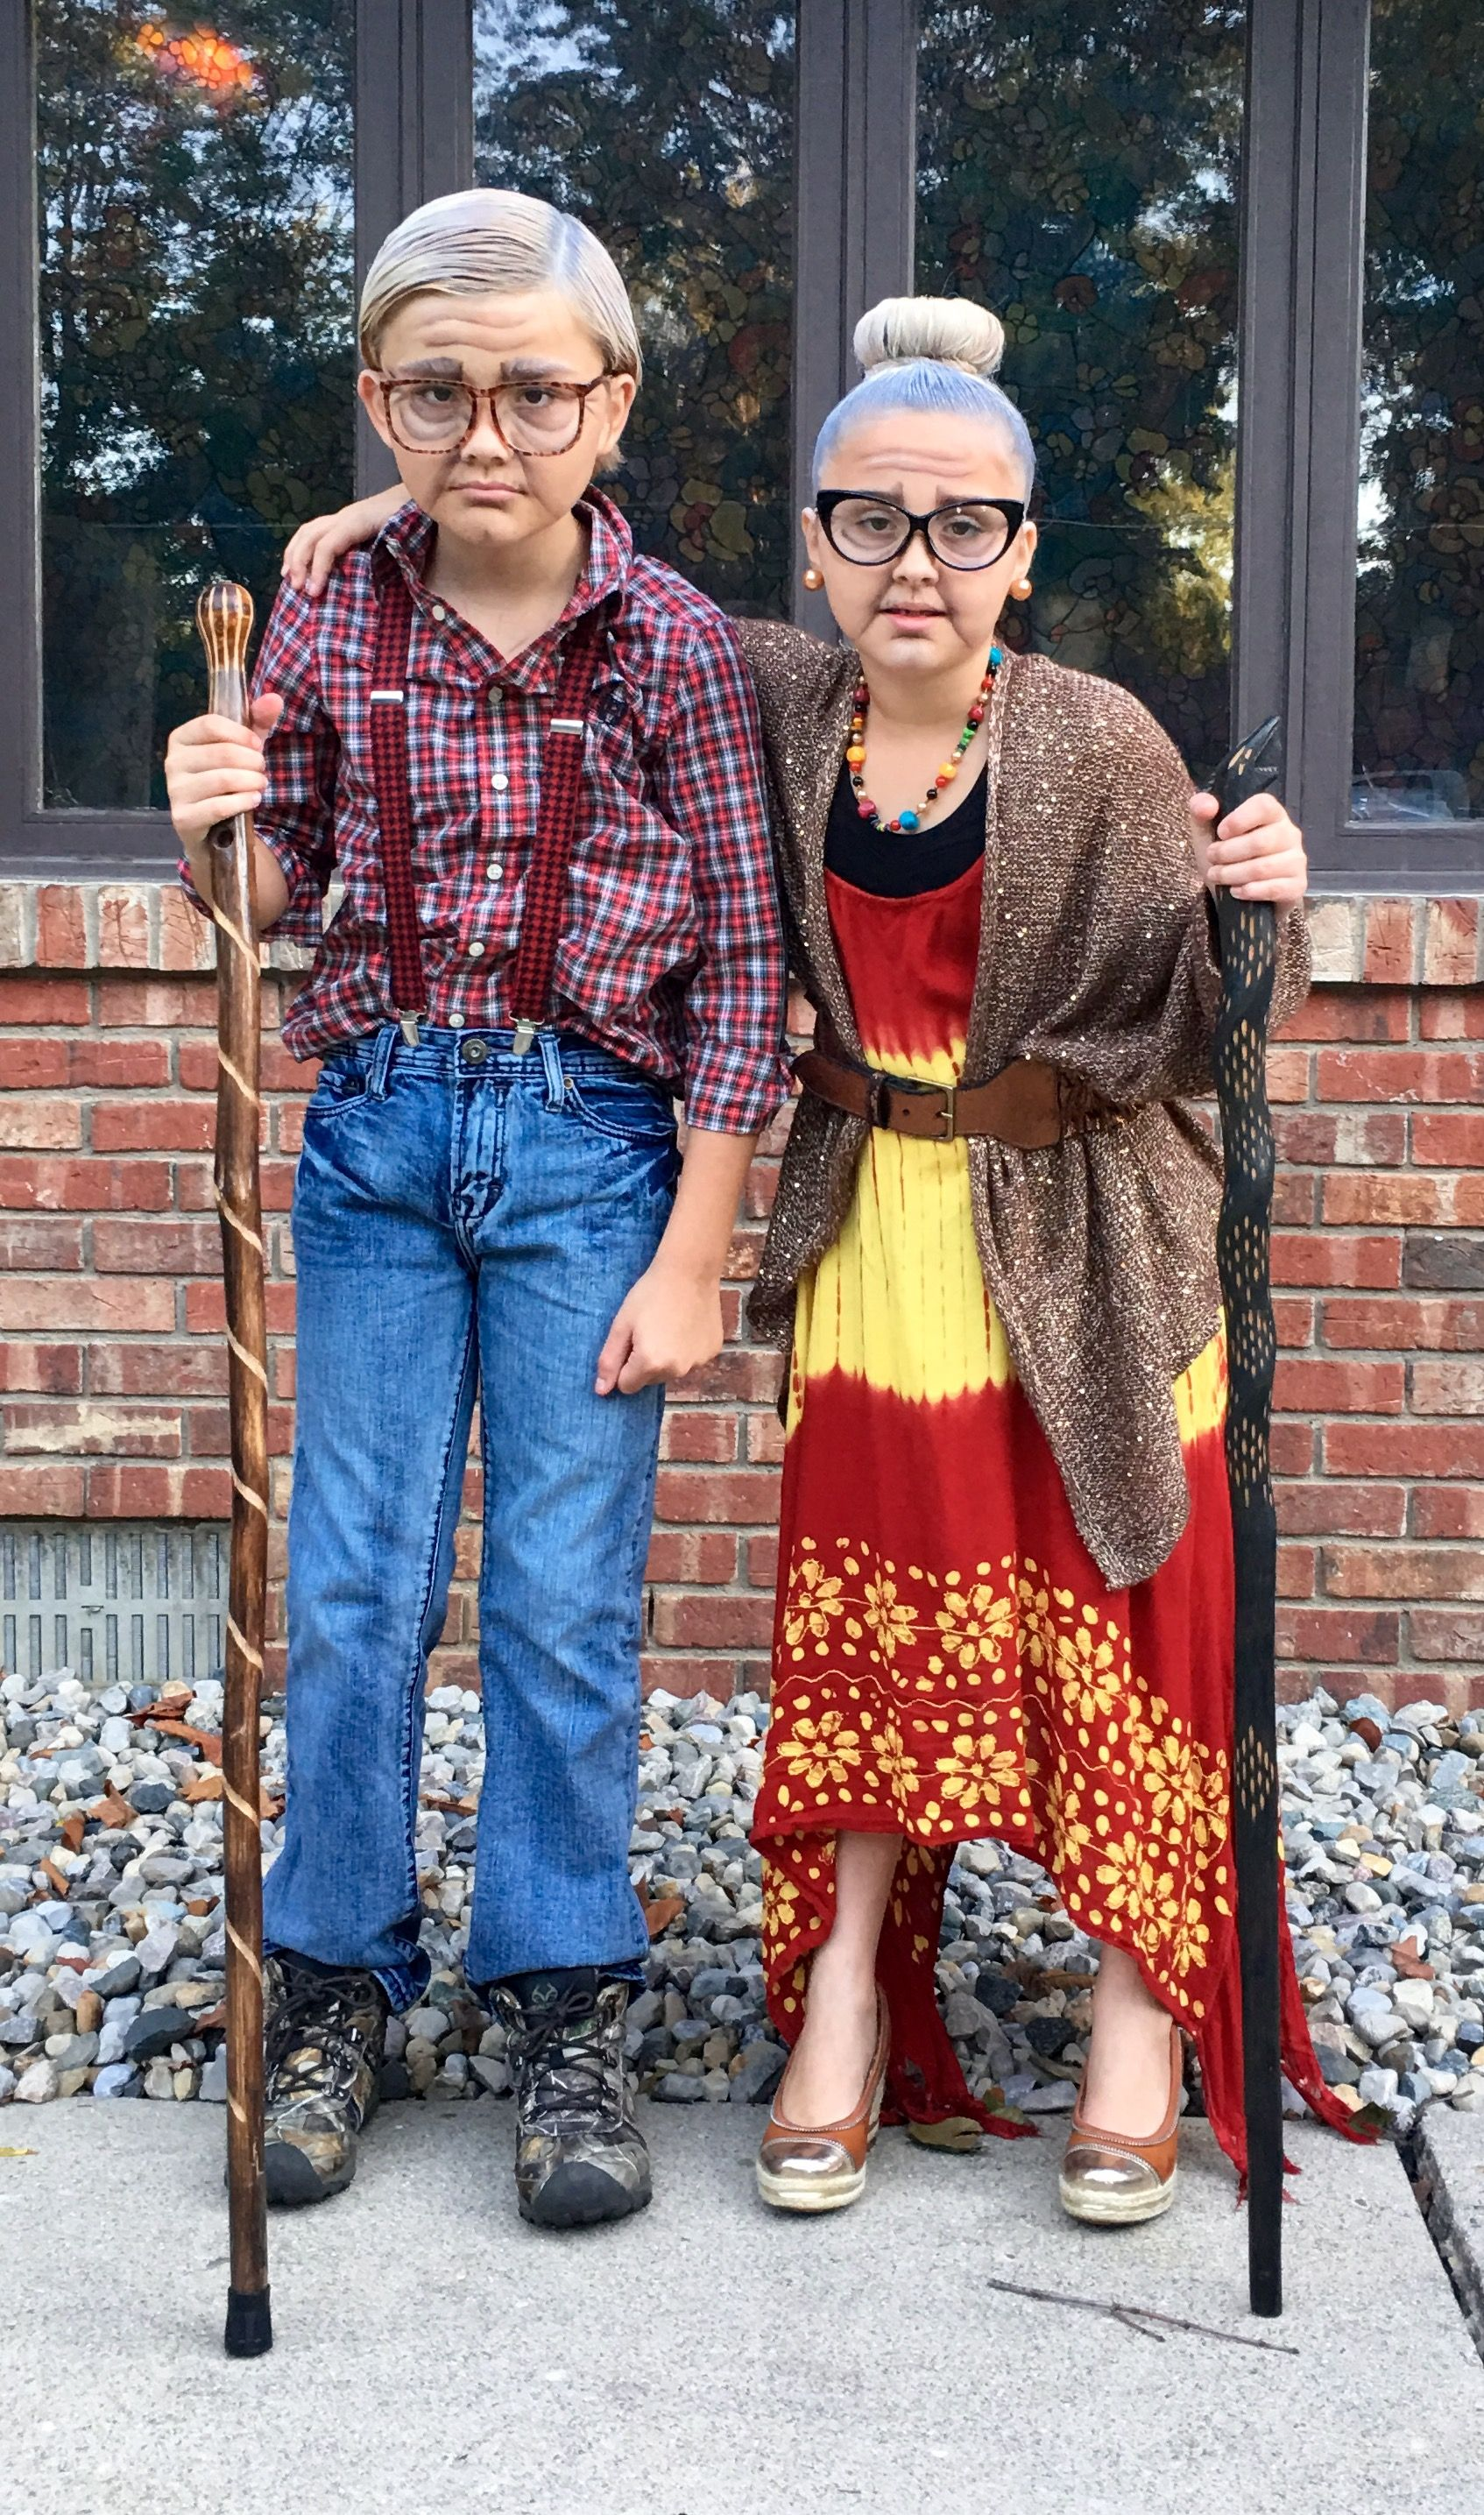 diy old age grandpa grandma makeup costume old couple bill willma 100th day of school